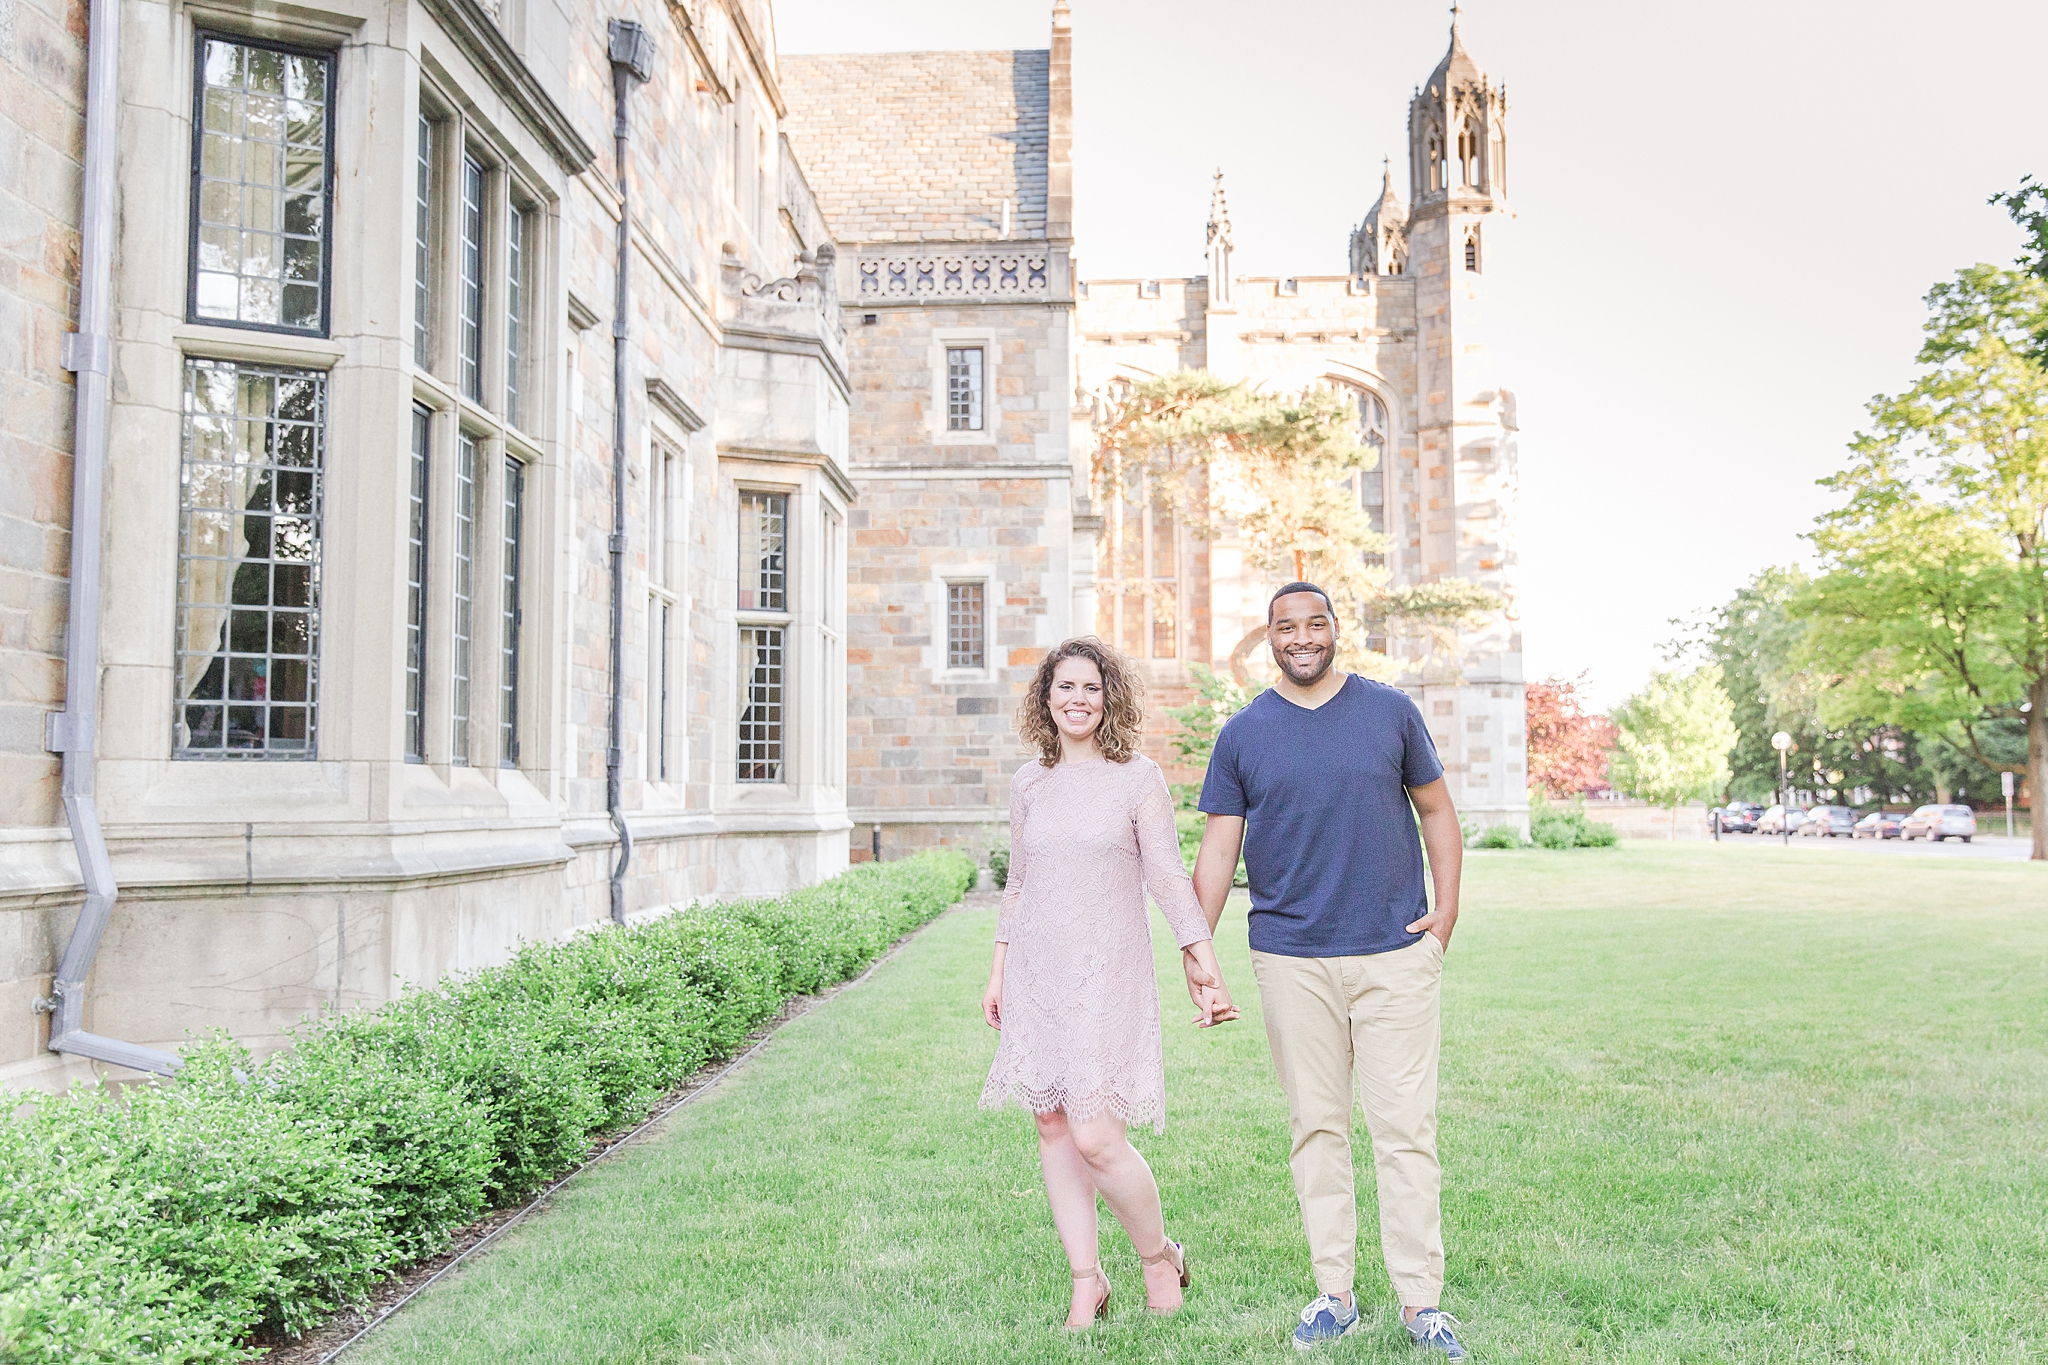 joyful-college-campus-engagement-photography-at-university-of-michigan-in-ann-arbor-mi-by-courtney-carolyn-photography_0012.jpg